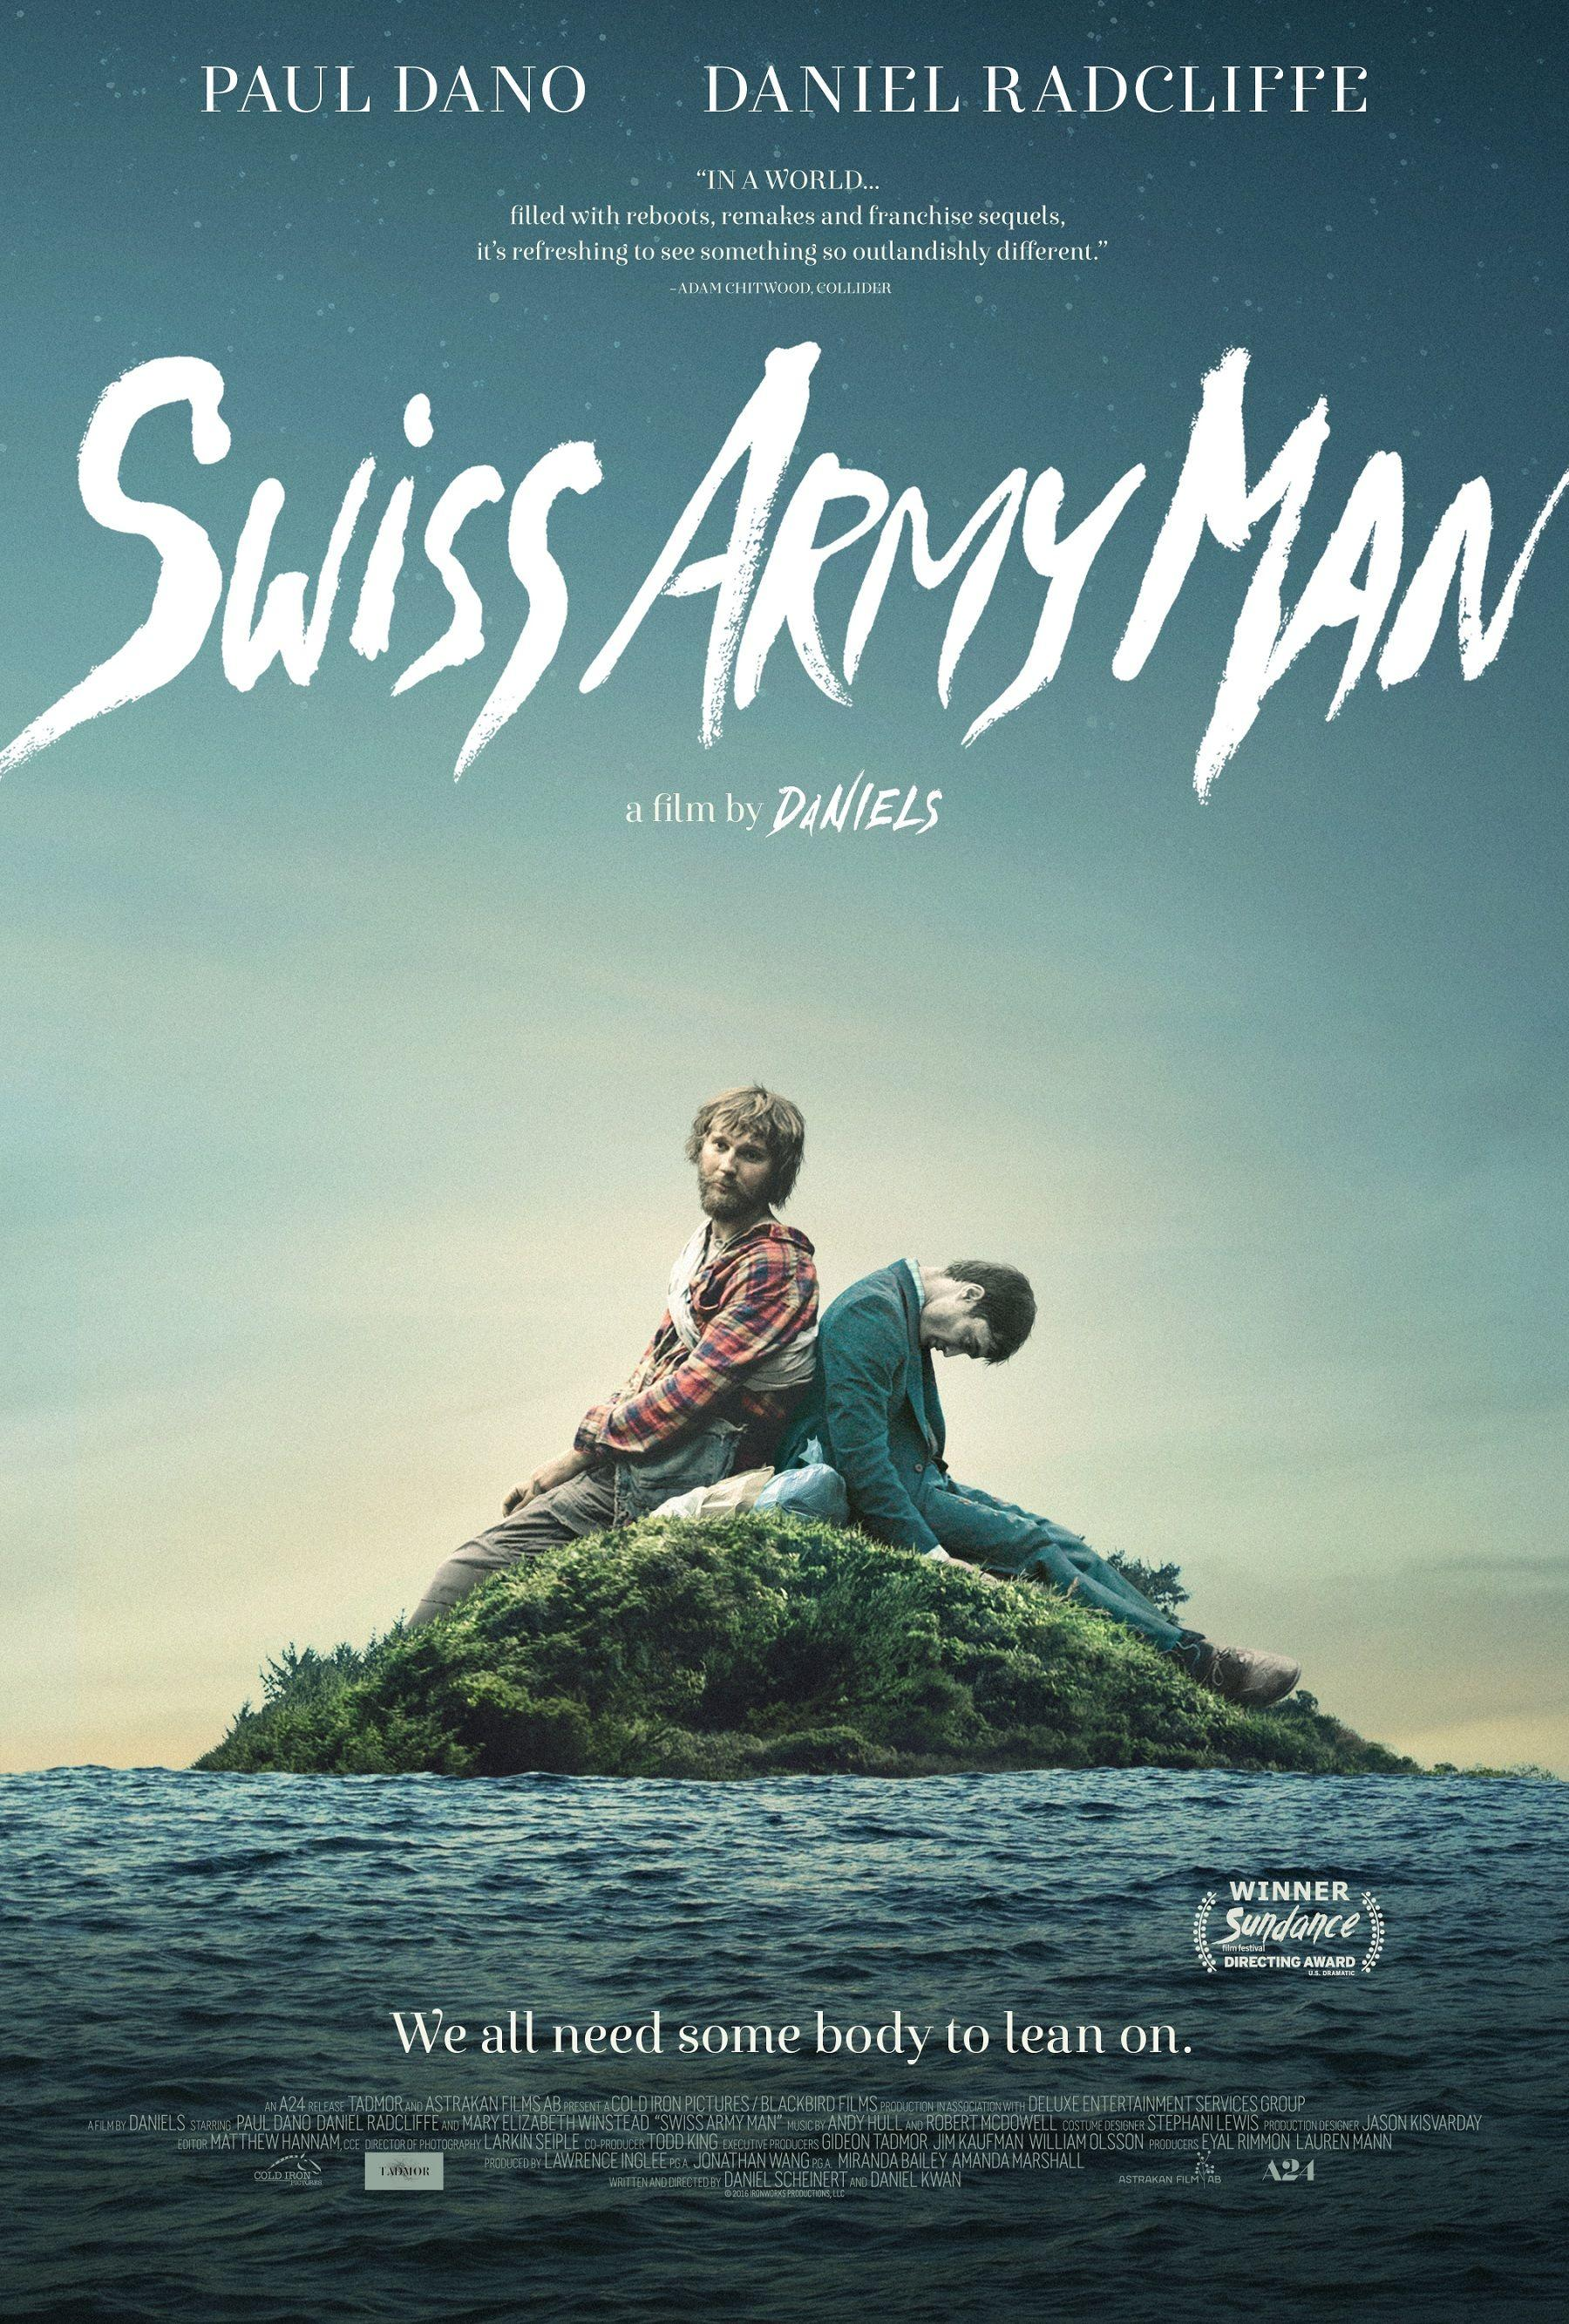 Swiss Army Man 2016 Movie Posters | JoBlo Posters